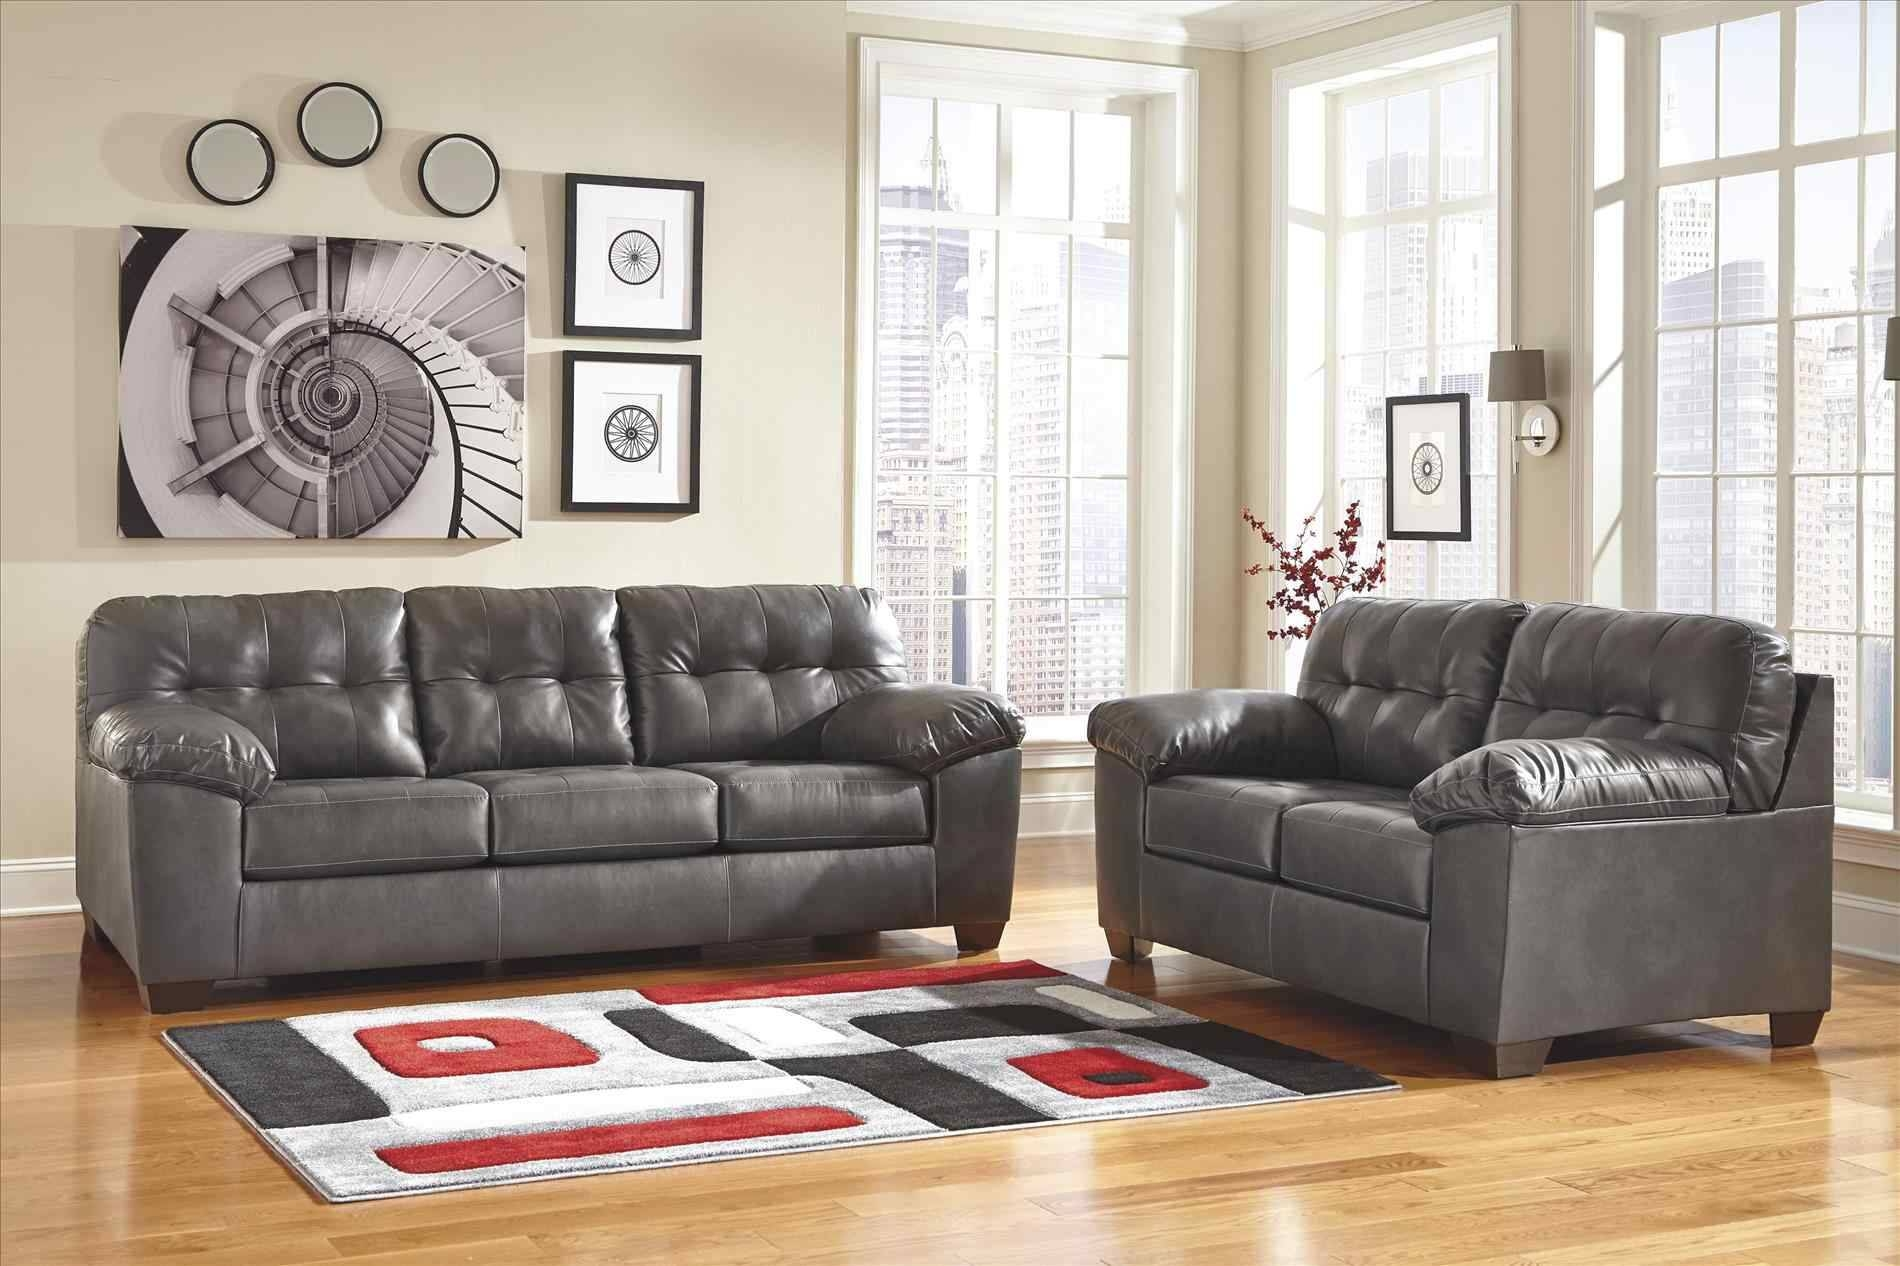 Ashley Furniture | Best Furniture Reference within Ashley Furniture Gray Sofa (Image 11 of 30)